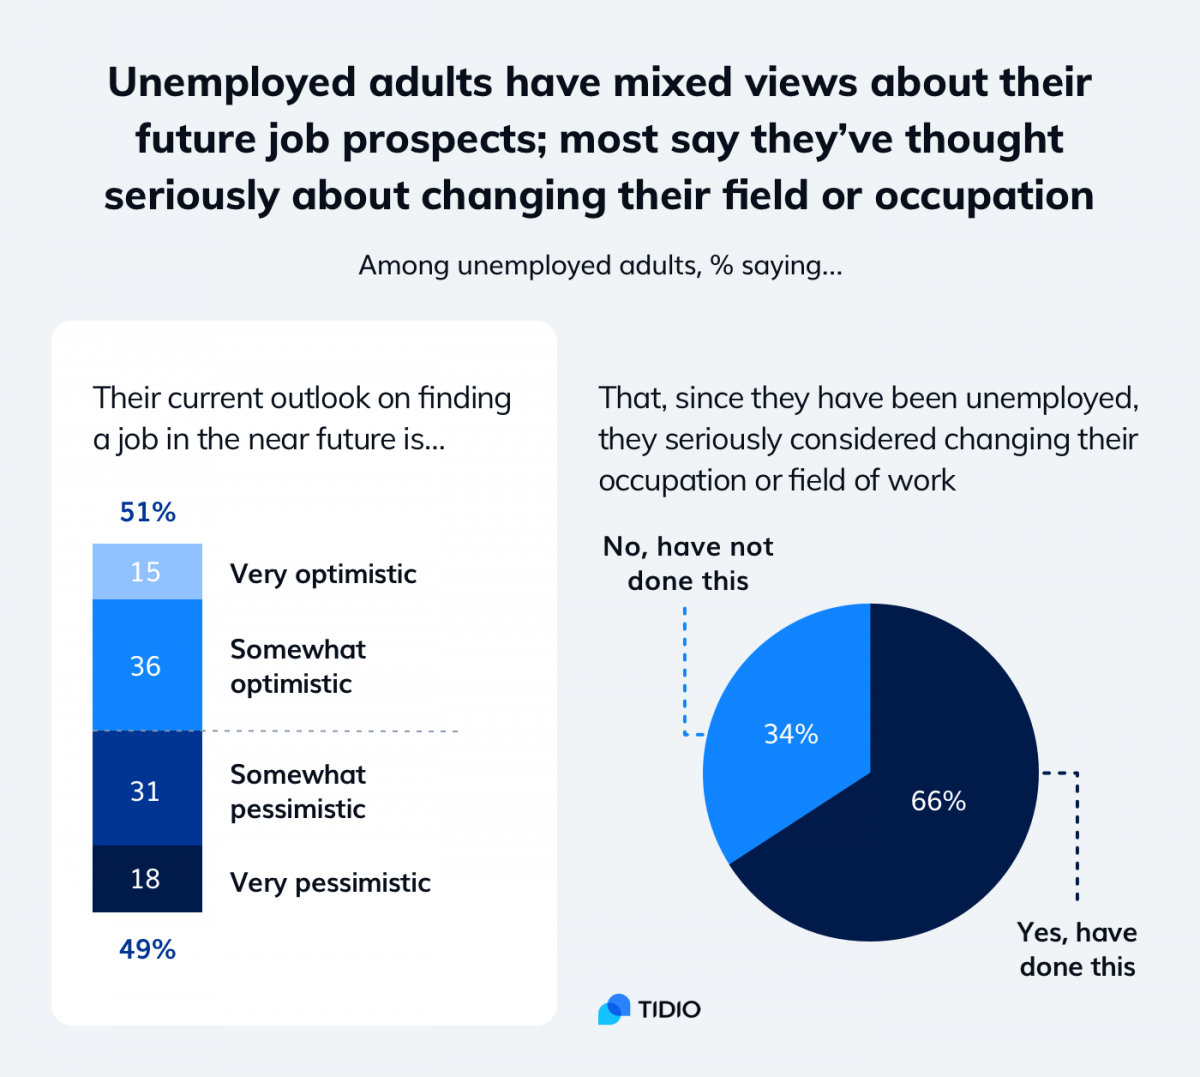 2 graphs showing unemployed adults views on their future prospects and the idea of changing their field or occupation